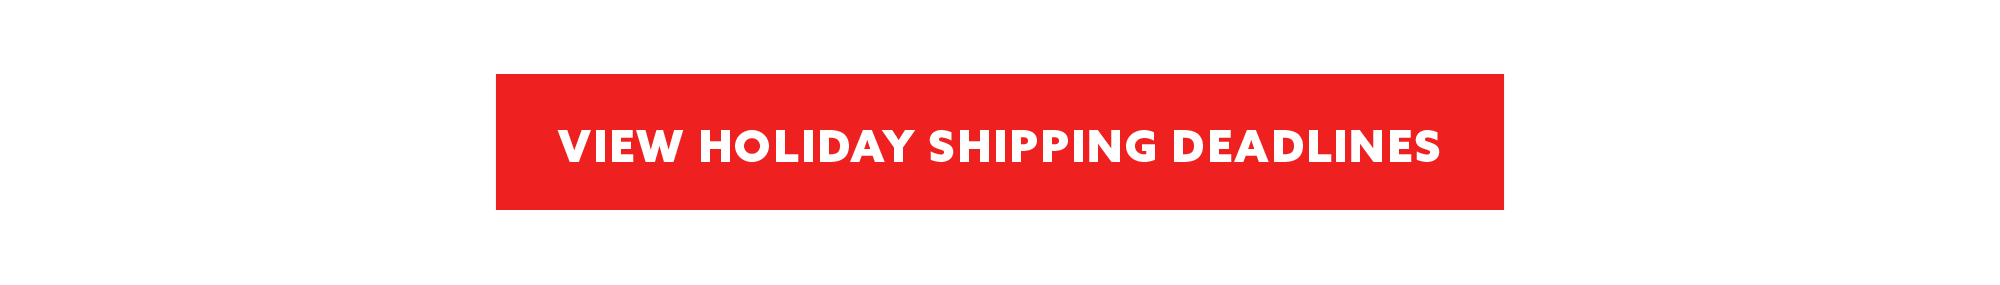 shipping deadlines button